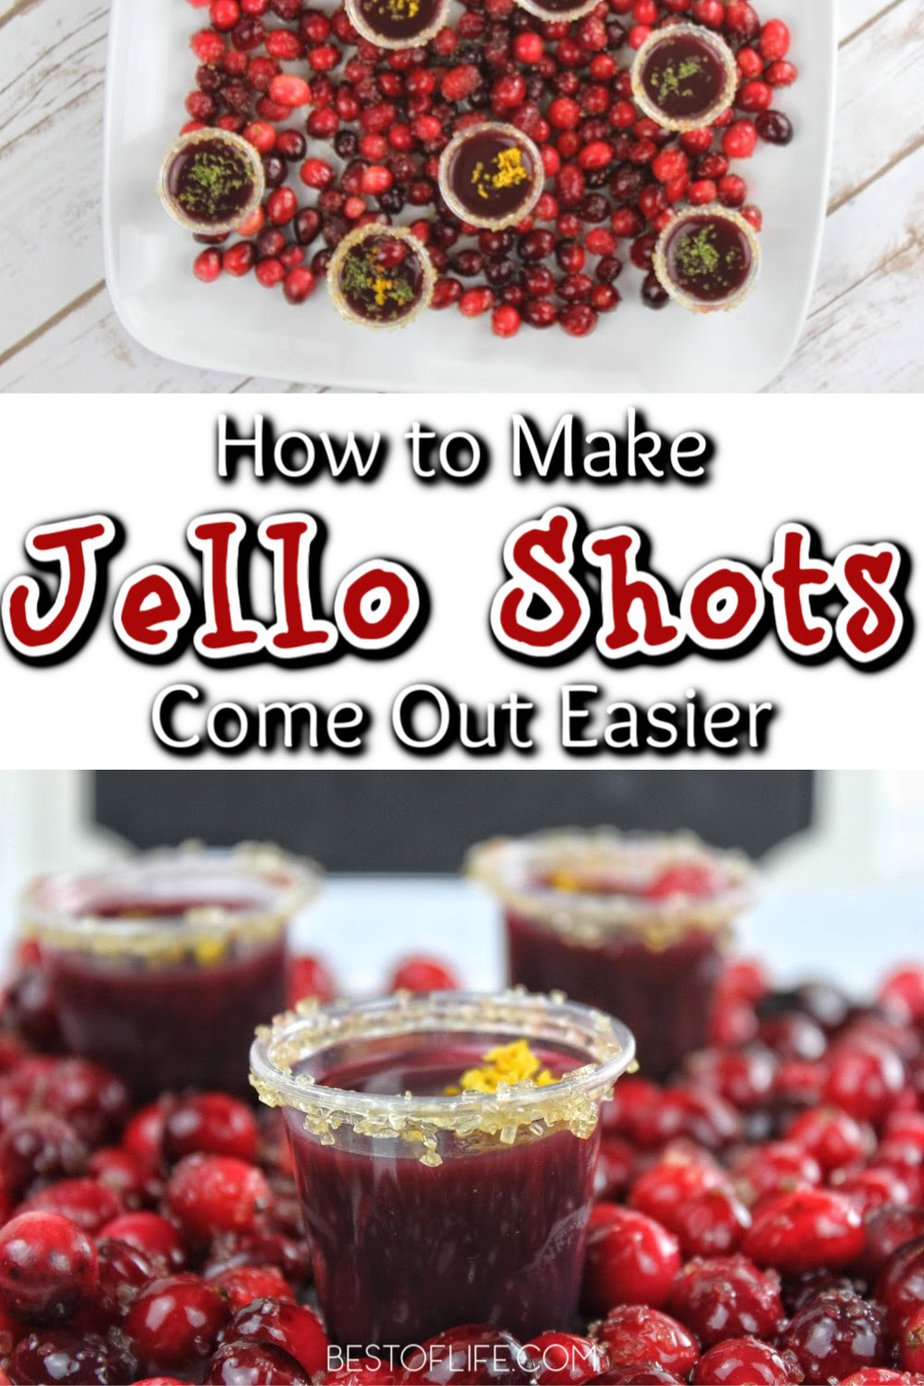 Jello shots are so much fun for parties and when you know how to make jello shots come out easier, you can look like a bartending pro! Tips for Jello Shots | Jello Shots Recipes | Cocktail Recipes | Party Recipes | Happy Hour Recipes #cocktails #recipe